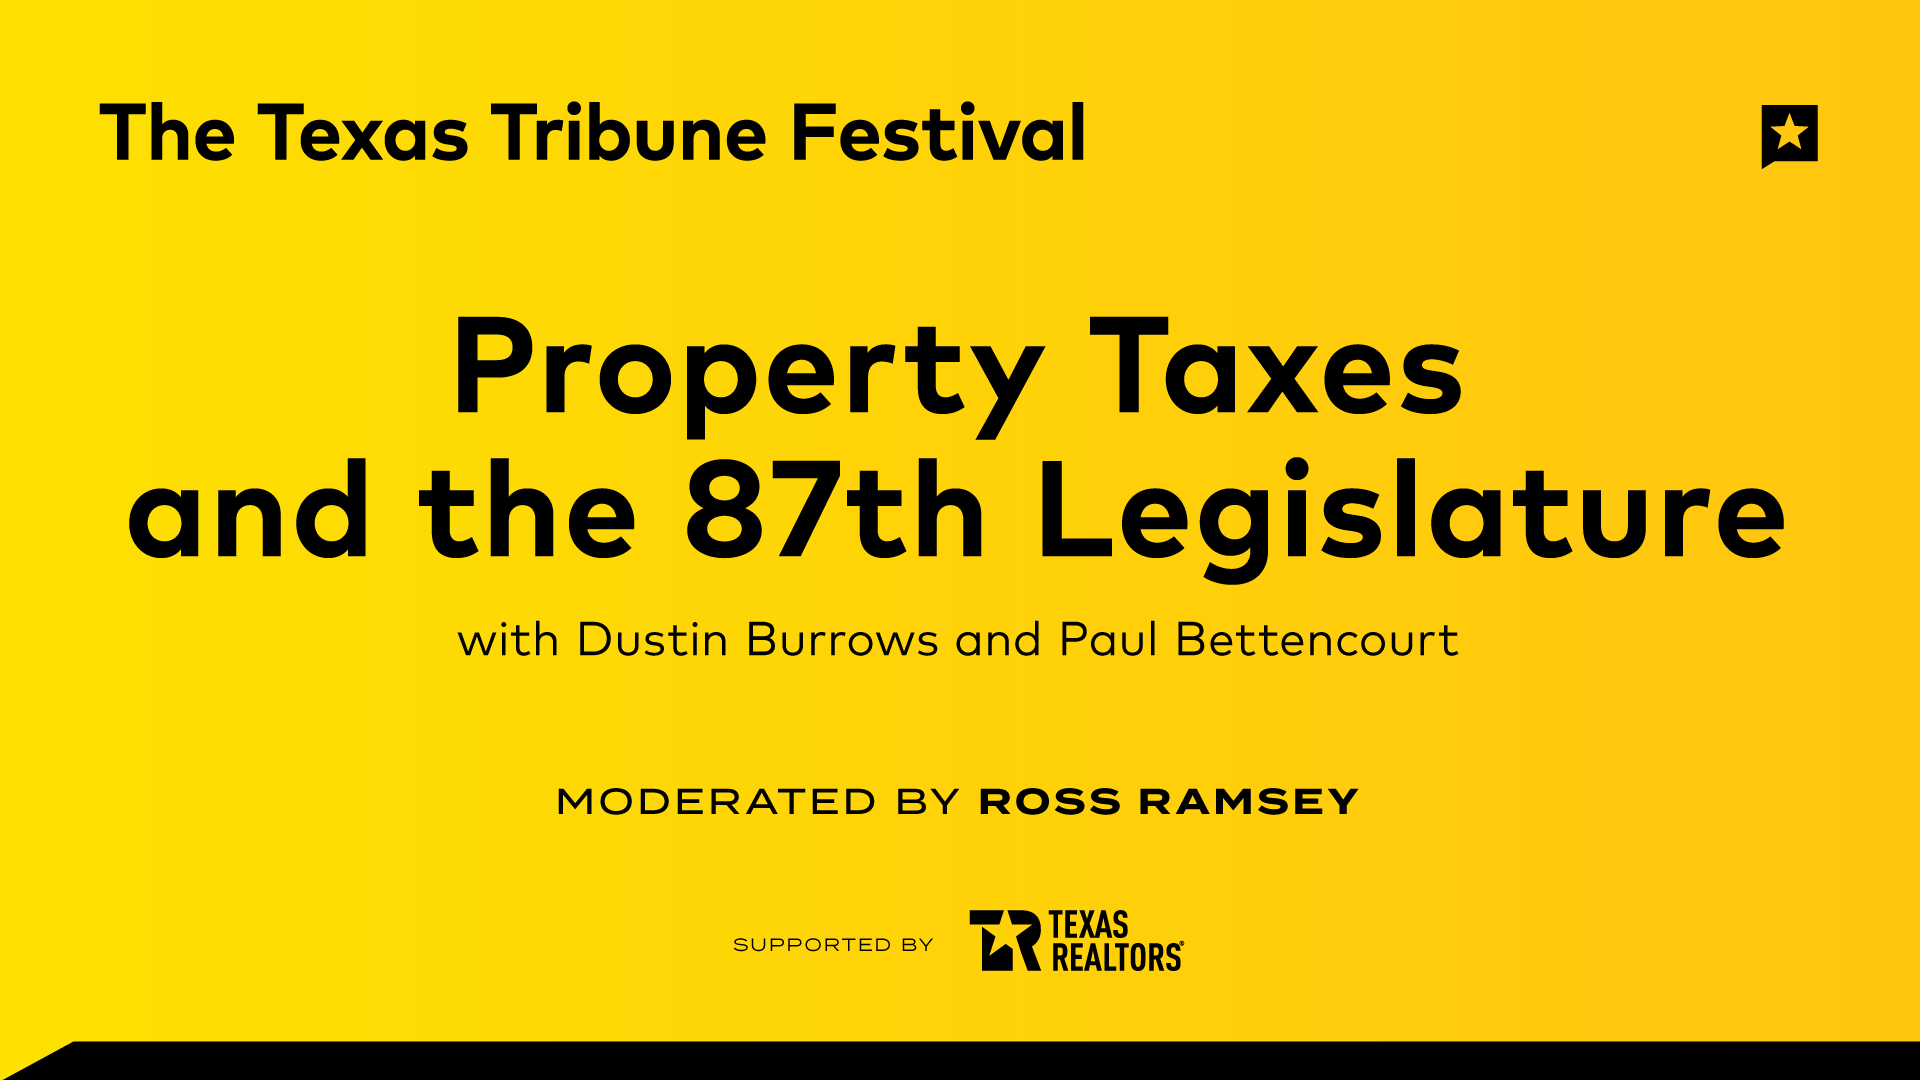 Property Taxes and the 87th Legislature